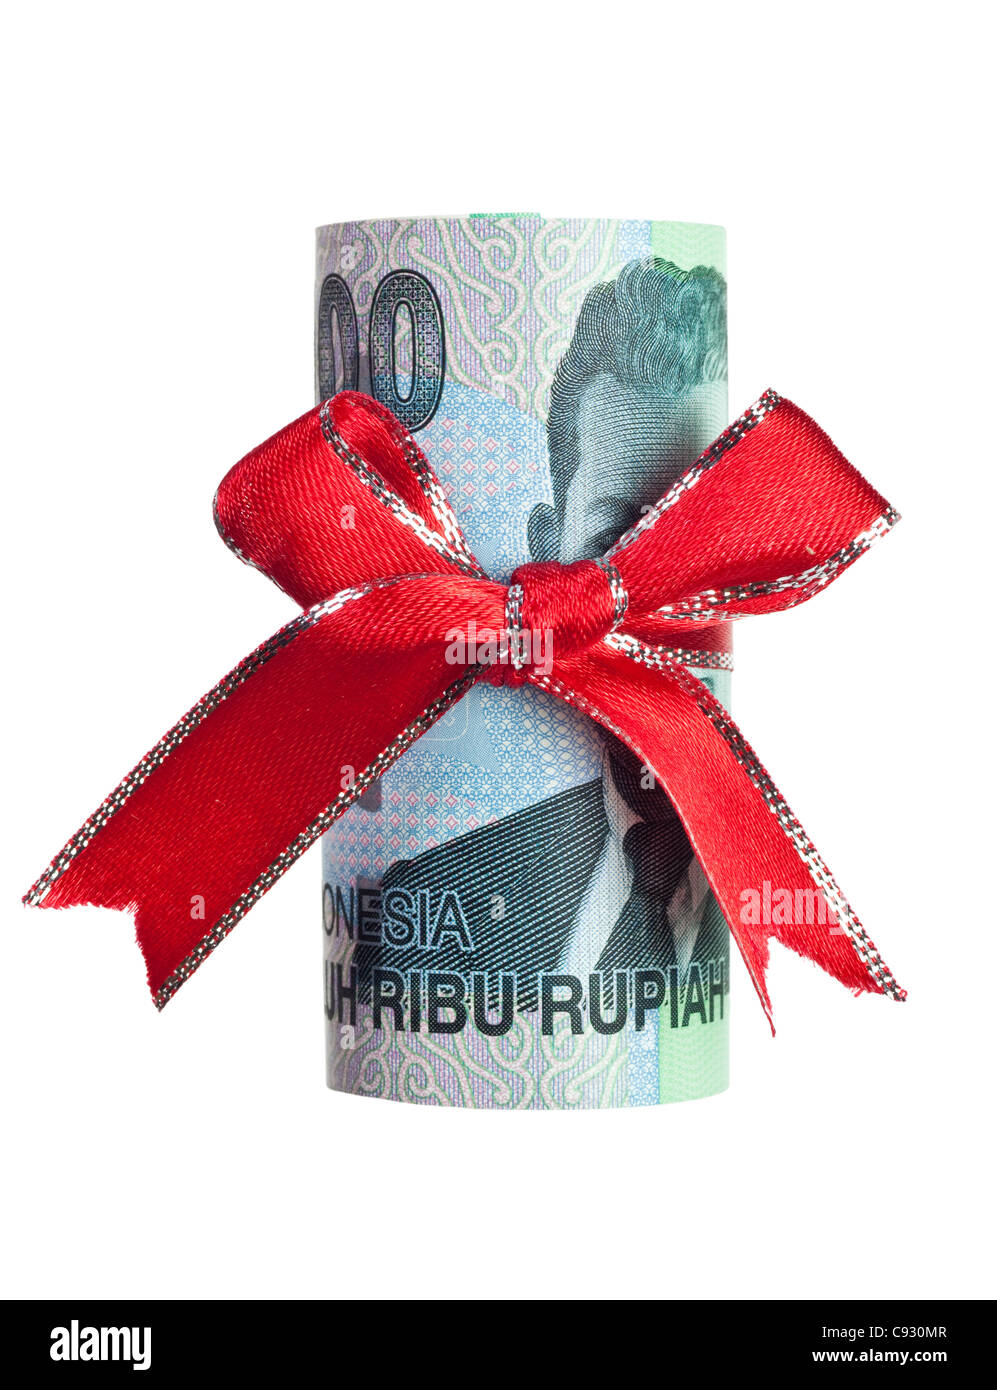 Indonesian Rupiah wrapped by ribbon isolated on white background - Stock Image